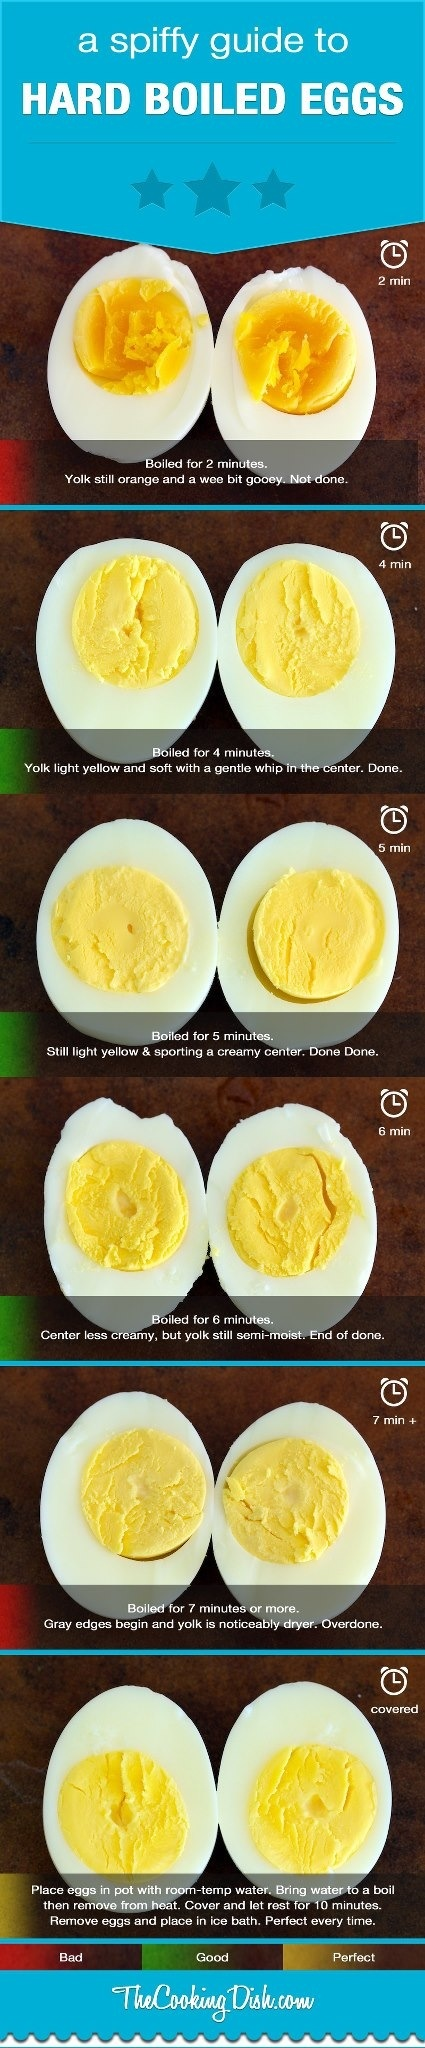 Guide to perfect hard boiled eggs! | Food~ Main Dish Delights | Pinte ...